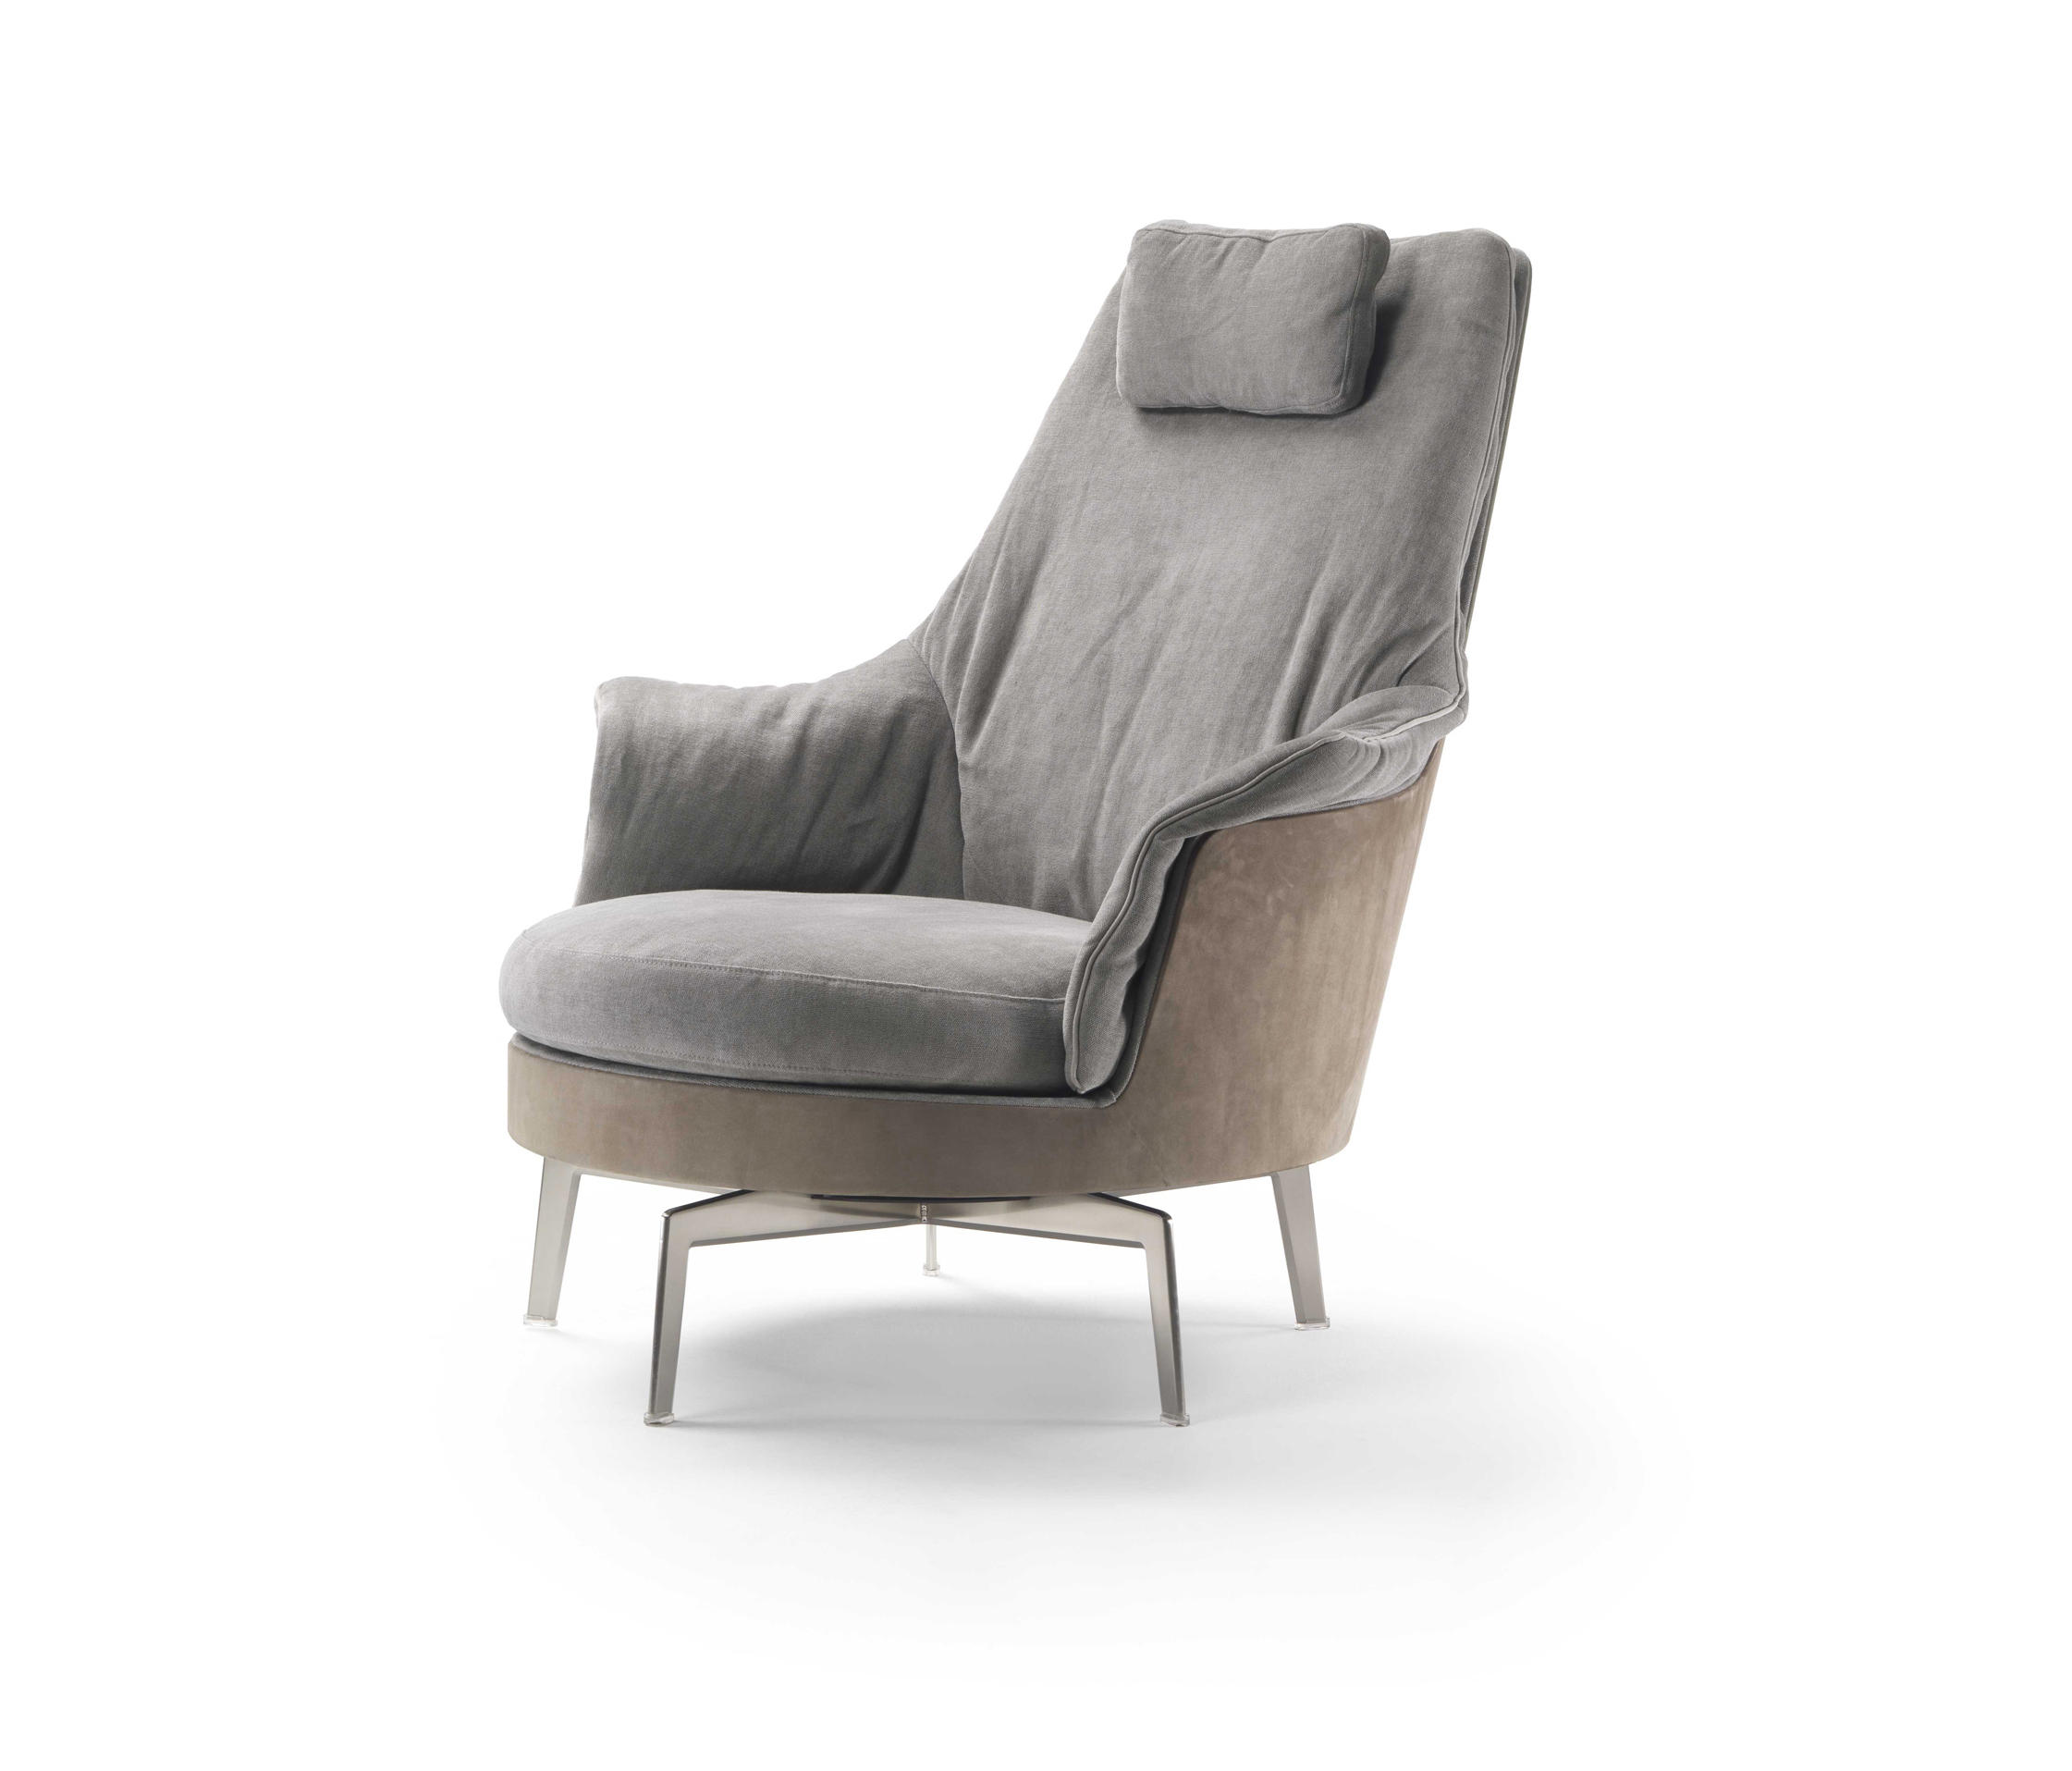 Guscioalto light armchair lounge chairs from flexform for Armchair furniture